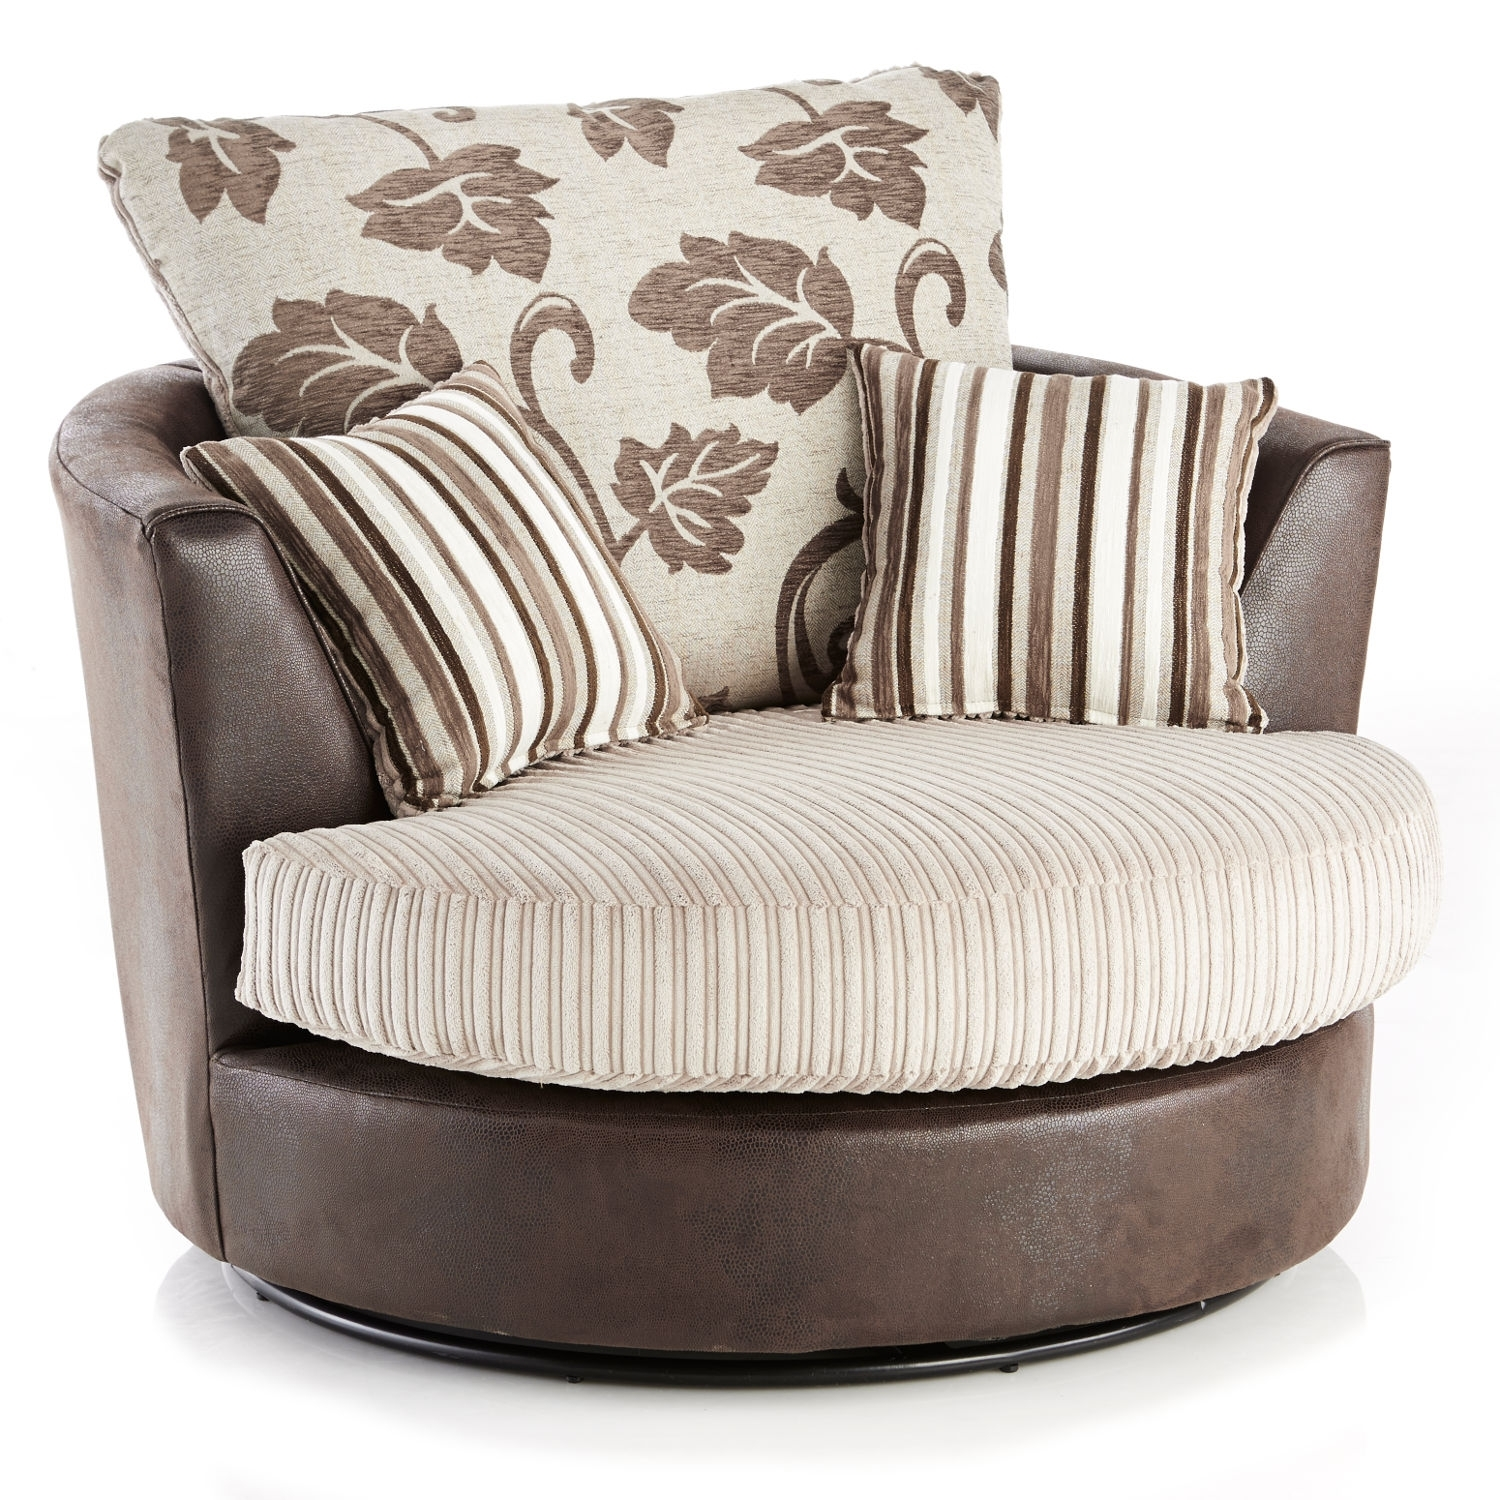 10 Inspirations Sofas With Swivel Chair Sofa Ideas